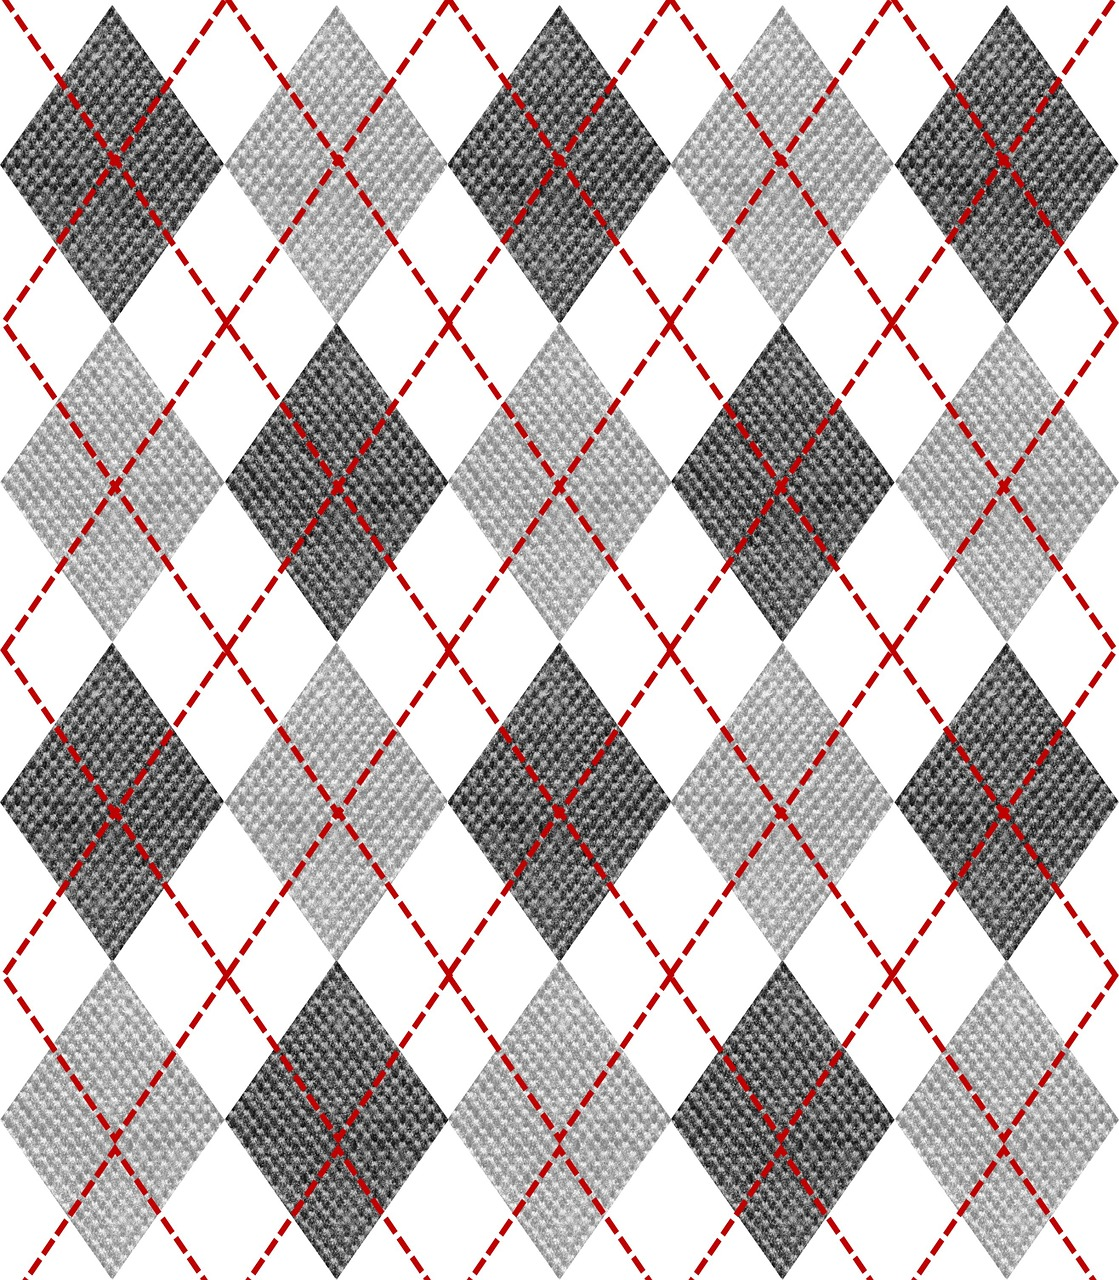 fabric,texture,argyle,design,grey,gray,dark,light,hues,shades,burgundy,stitch,stitching,stitches,material,vintage,decoration,classic,fiber,cloth,textile,white,geometric,fashion,style,canvas,decorative,scrapbook,backdrop,background,free pictures, free photos, free images, royalty free, free illustrations